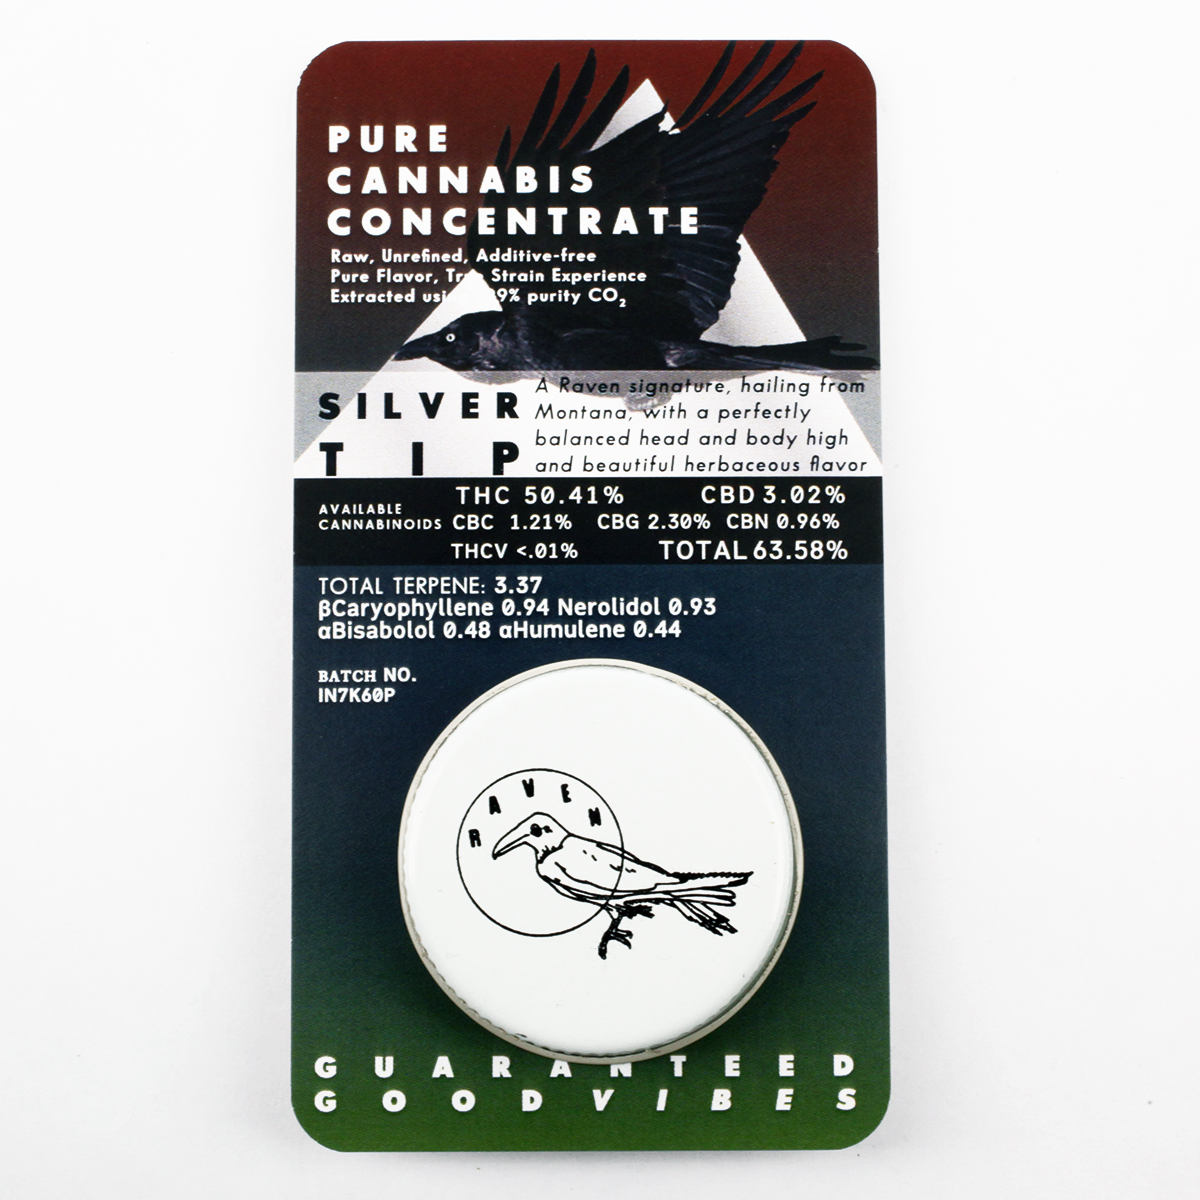 PURE CANNABIS CONCENTRATE — raven